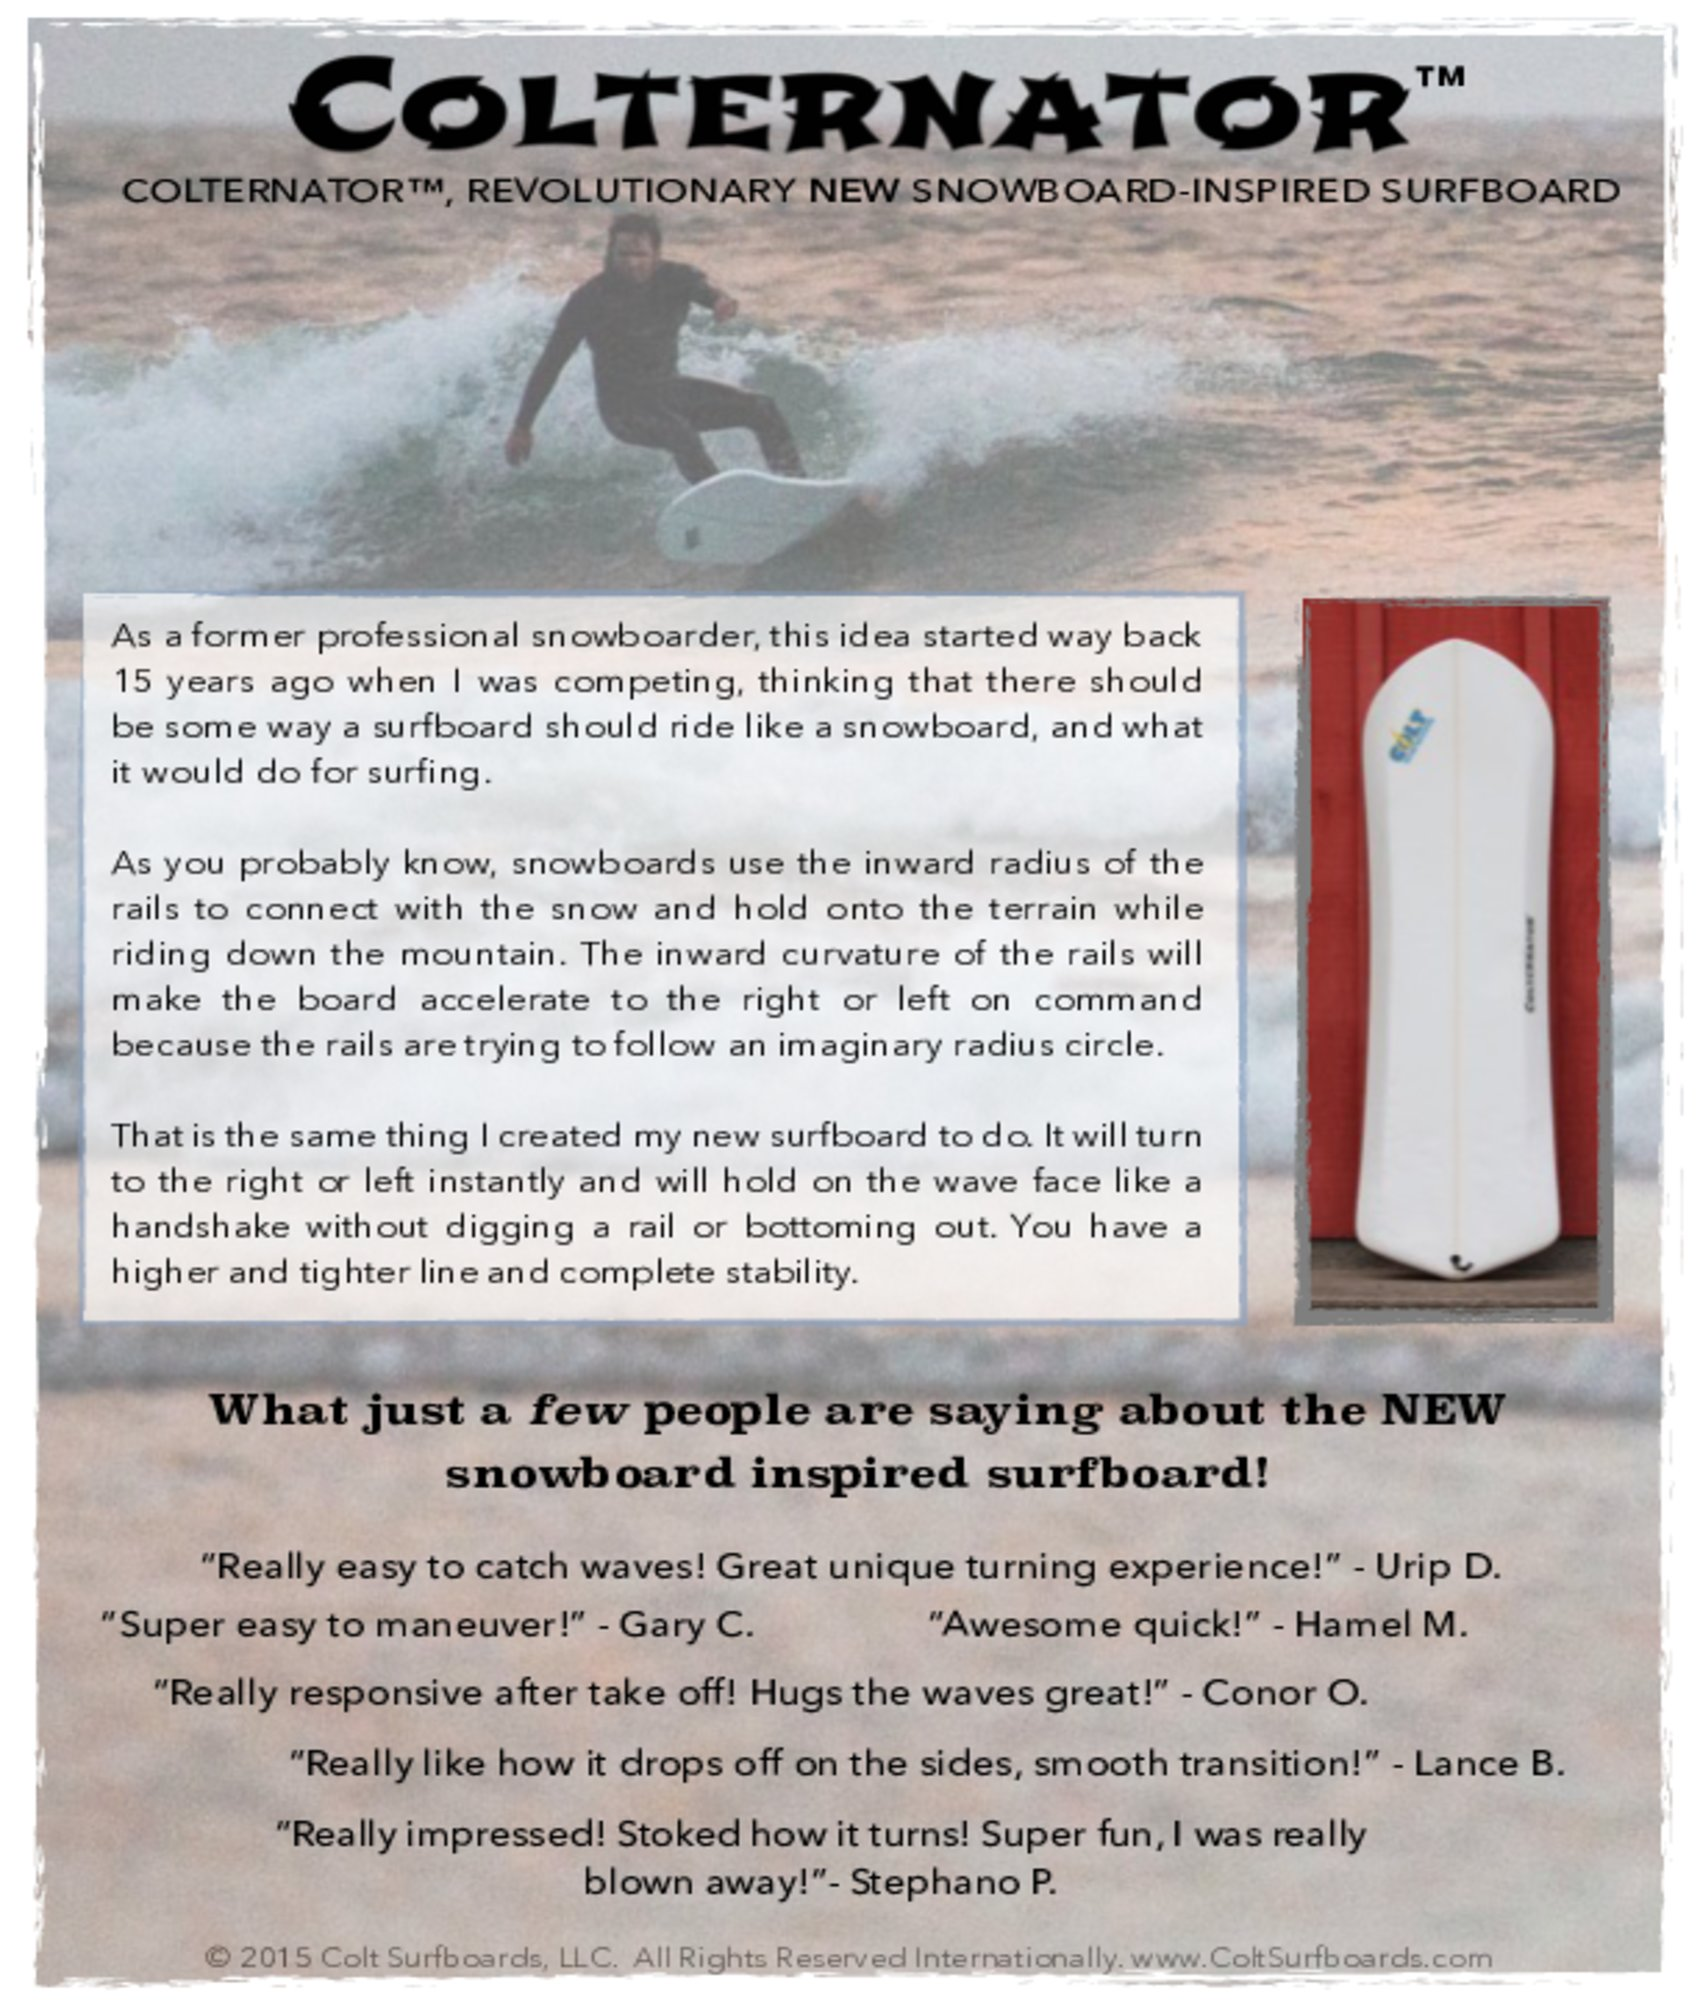 About_Colternator_Surfboards_surboards_tab_© 2015 Colt Surfboards LLC All rights reserved internationally